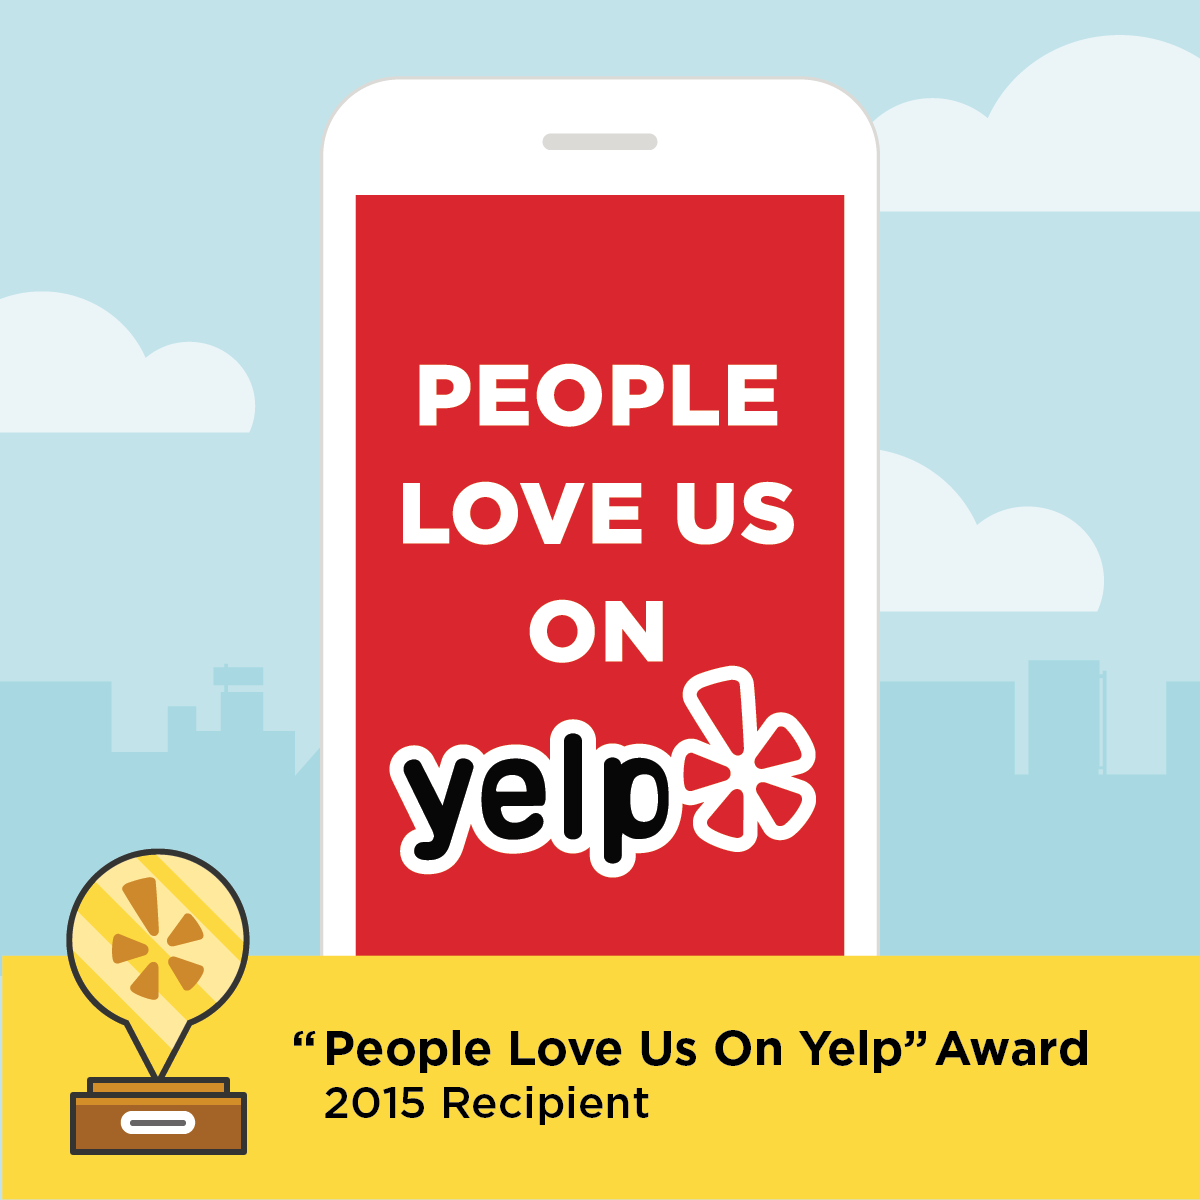 Pago rated as one of the top restaurants in Salt Lake City on Yelp.